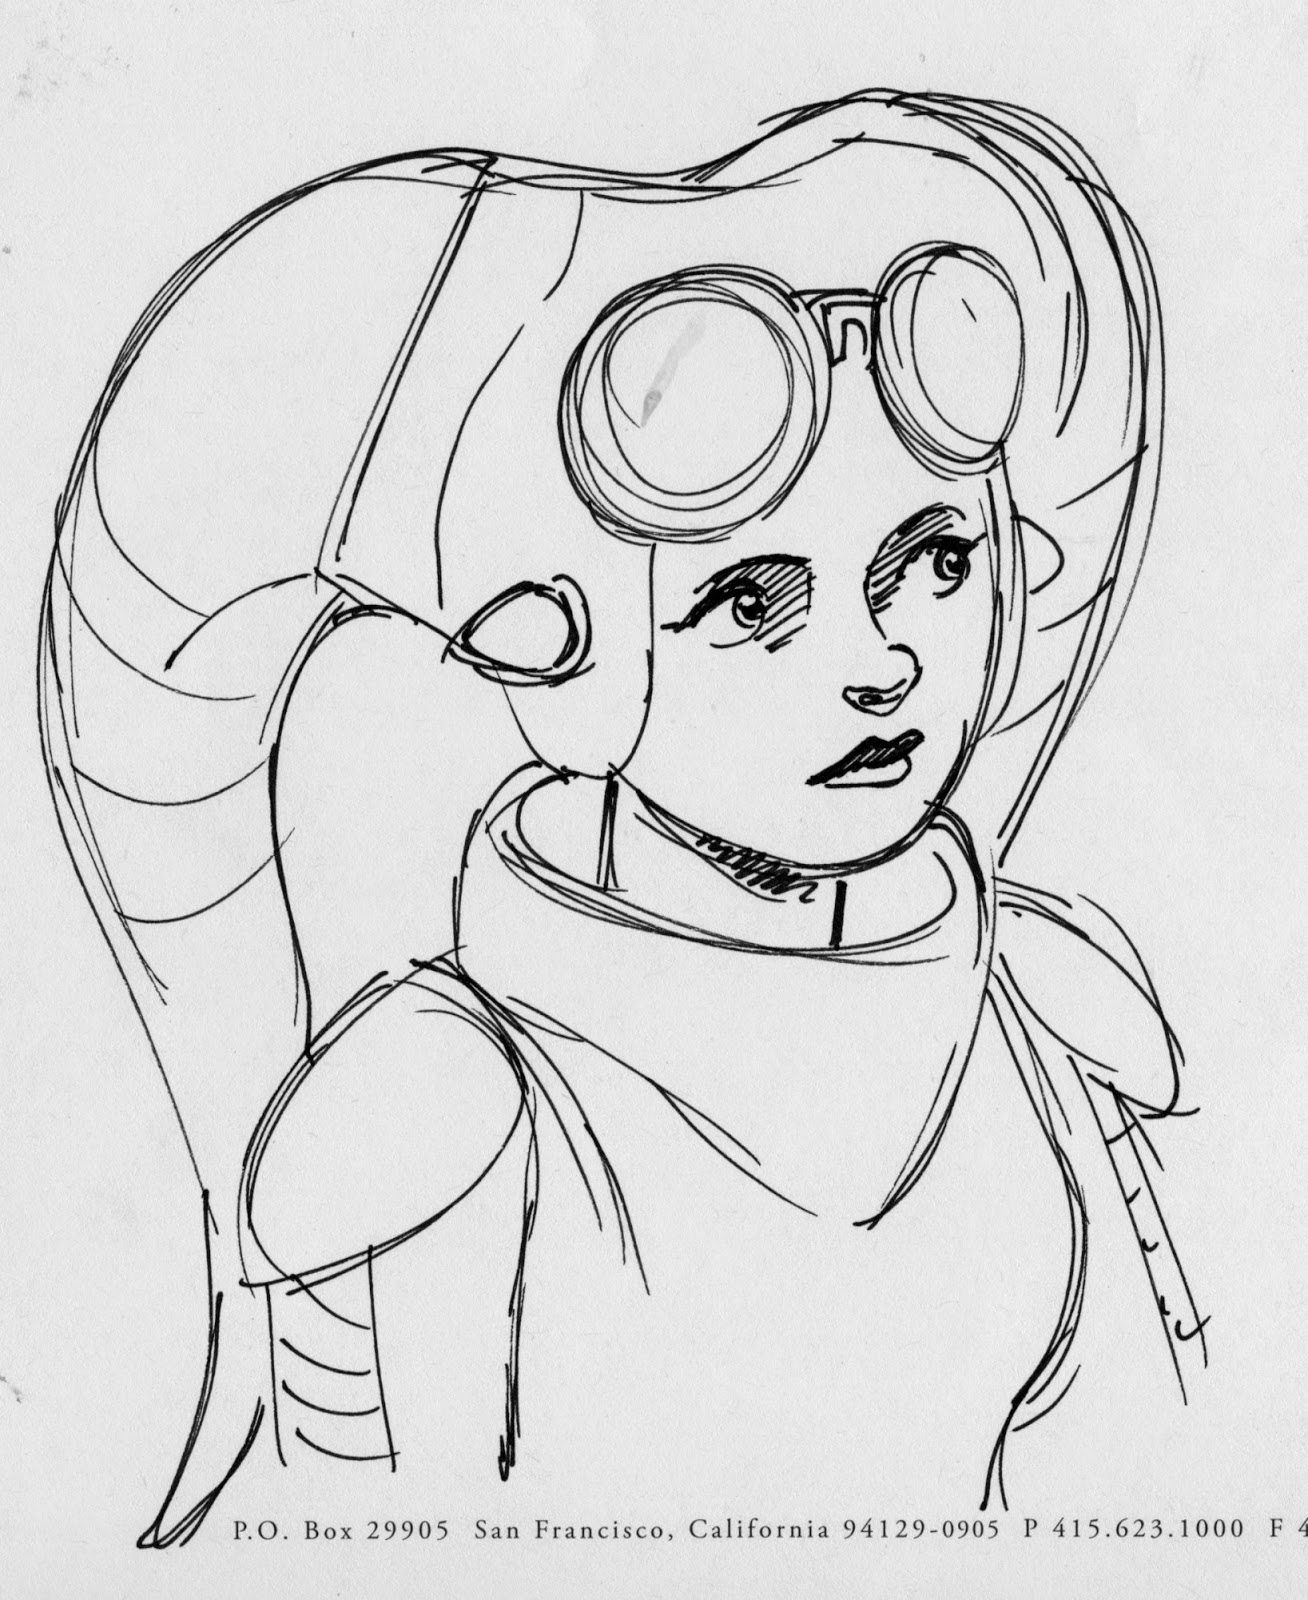 Hera concept art from Star Wars rebels